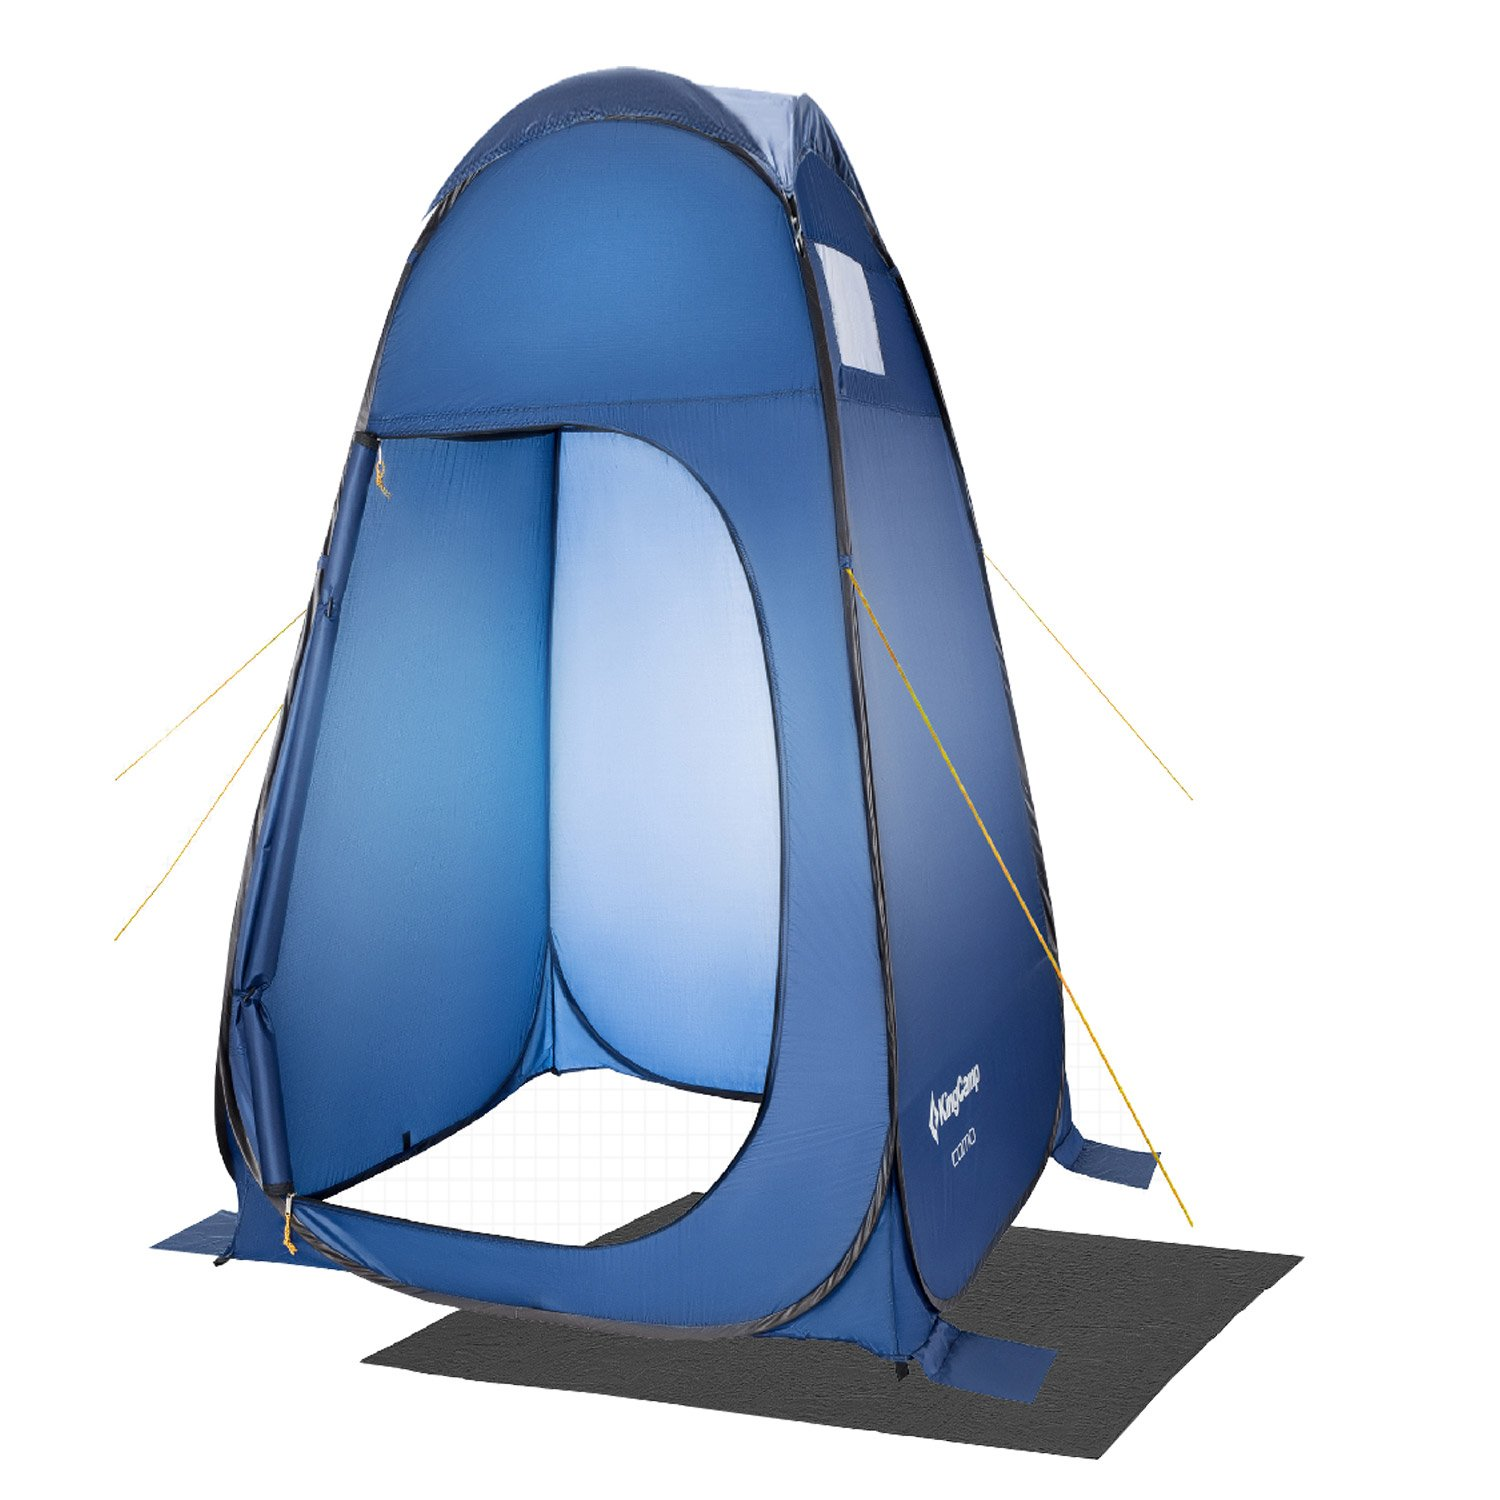 KingCamp Pop Up Dressing Changing Tent Shower Room Detachable Floor for Camping Outdoor Beach Toilet Portable with Carry Bag by KingCamp